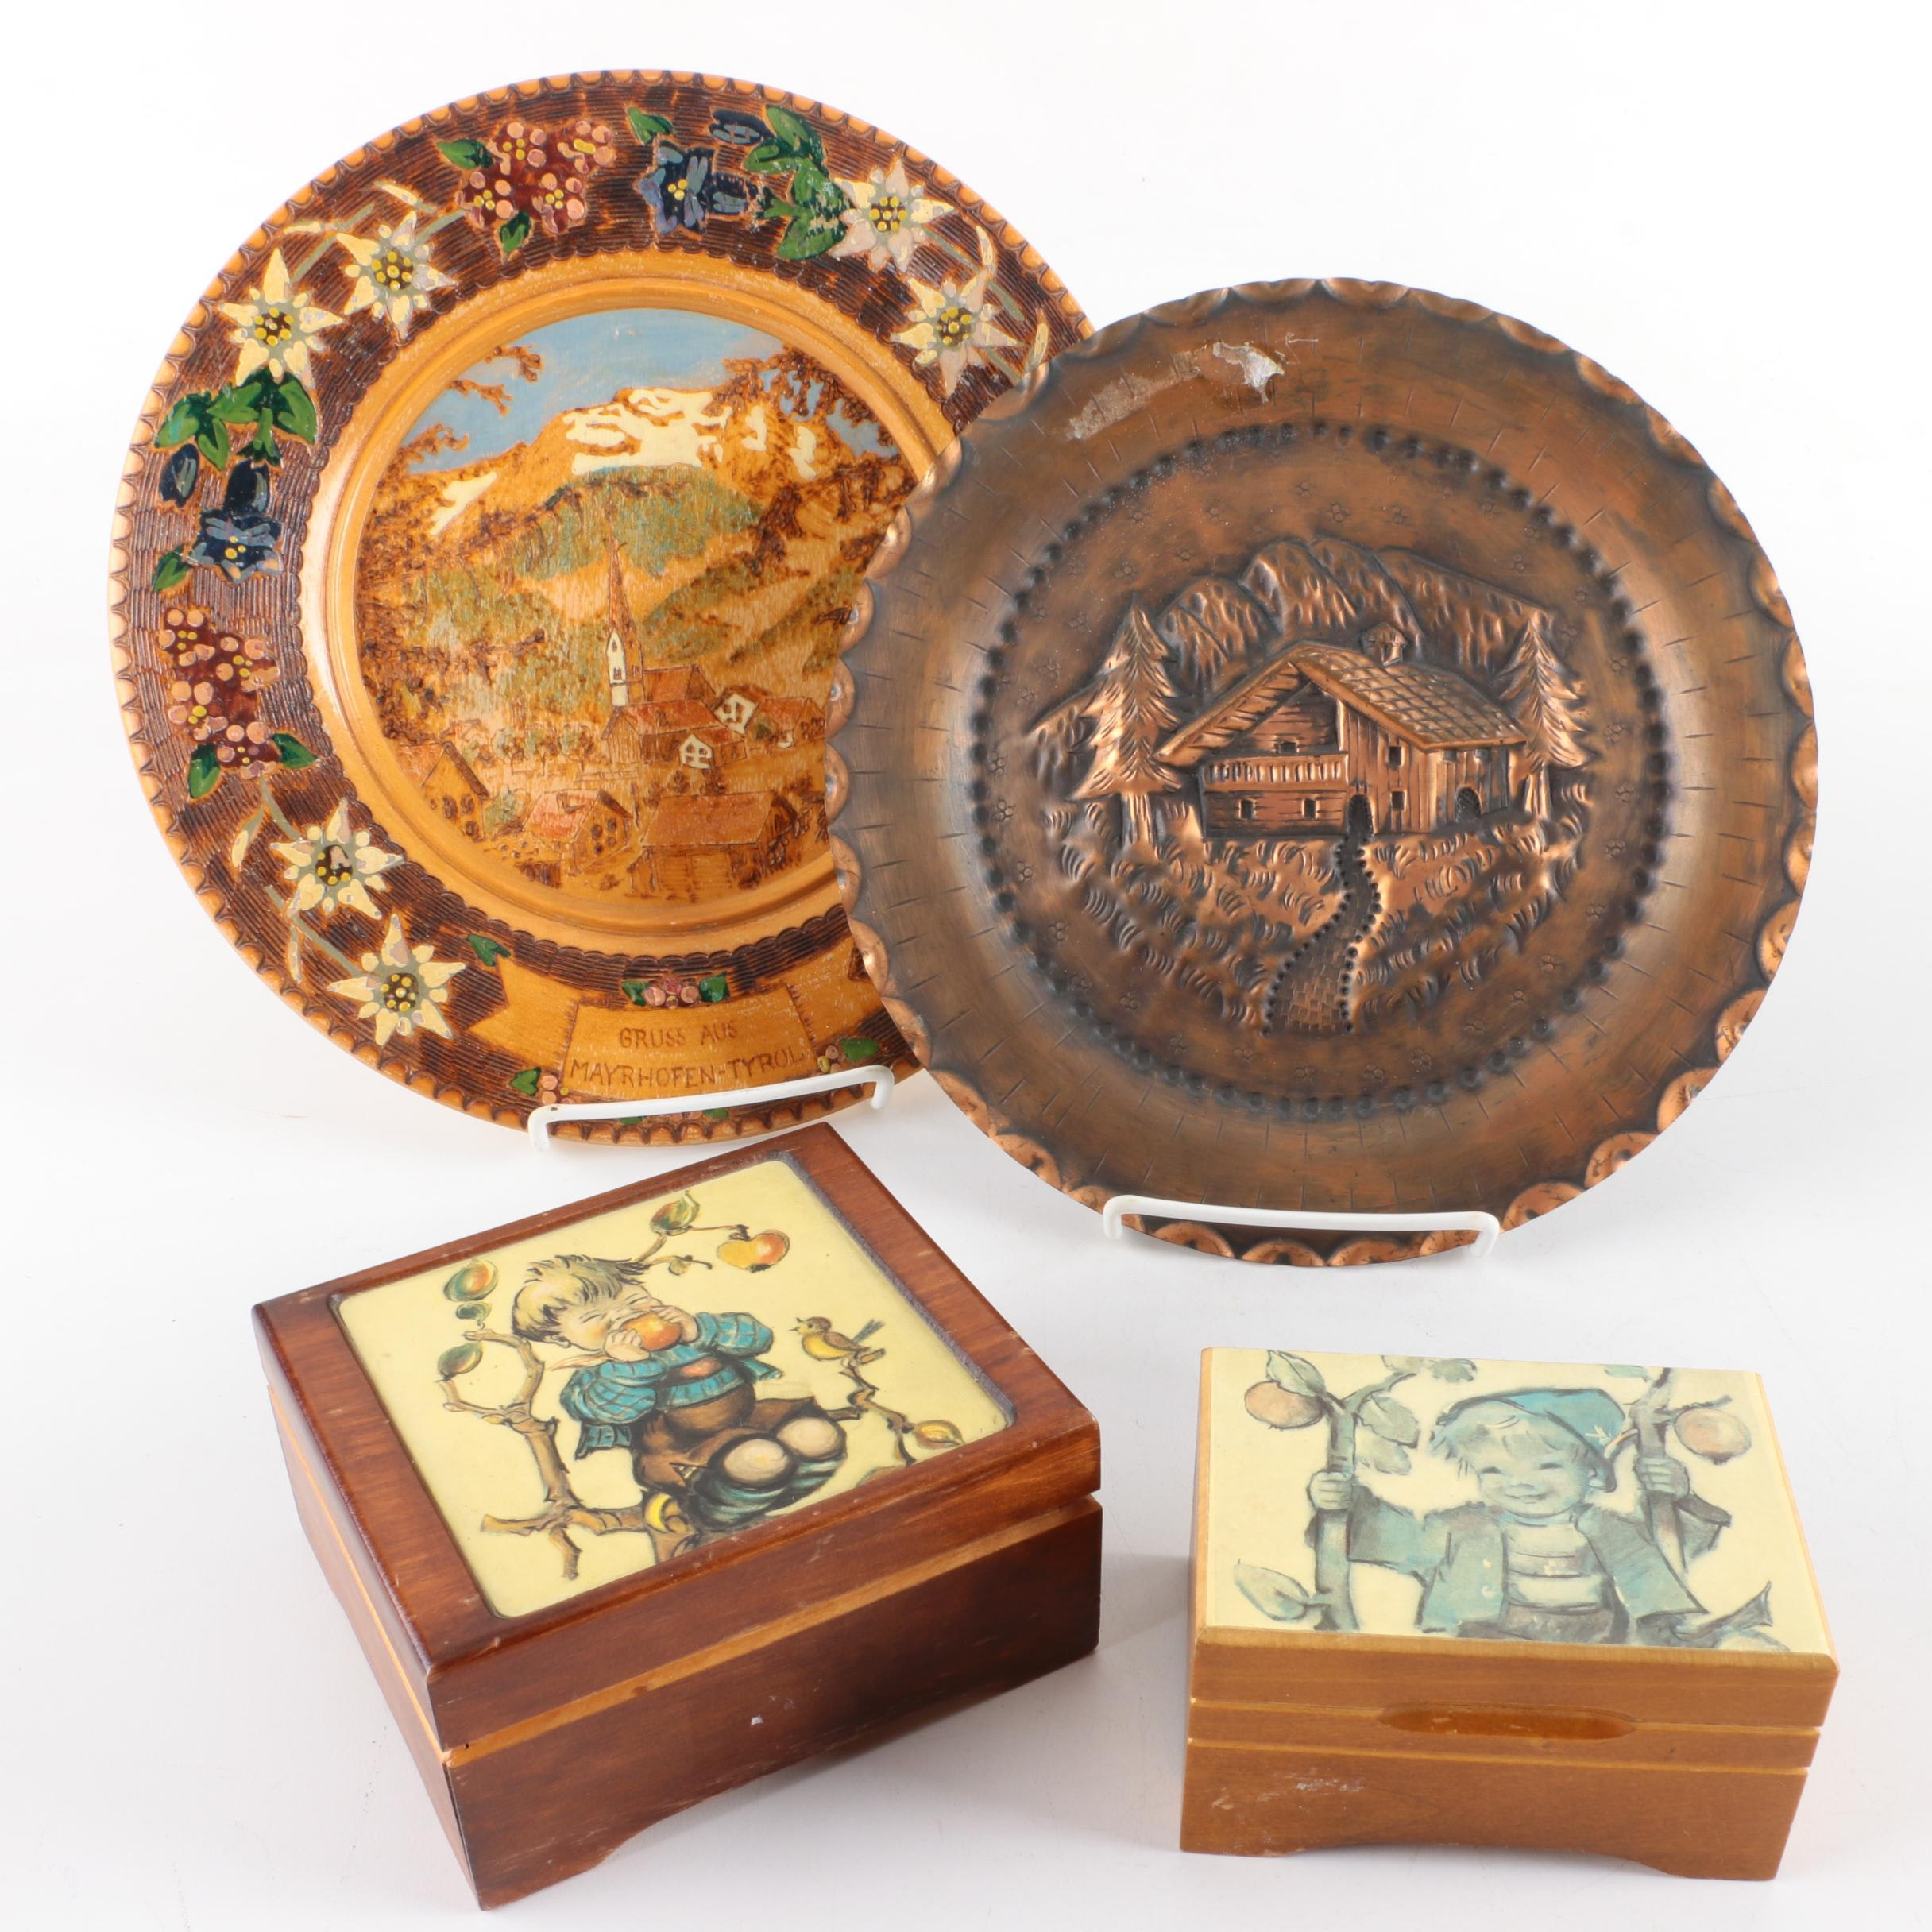 Vintage Music Boxes and Decorative Plates